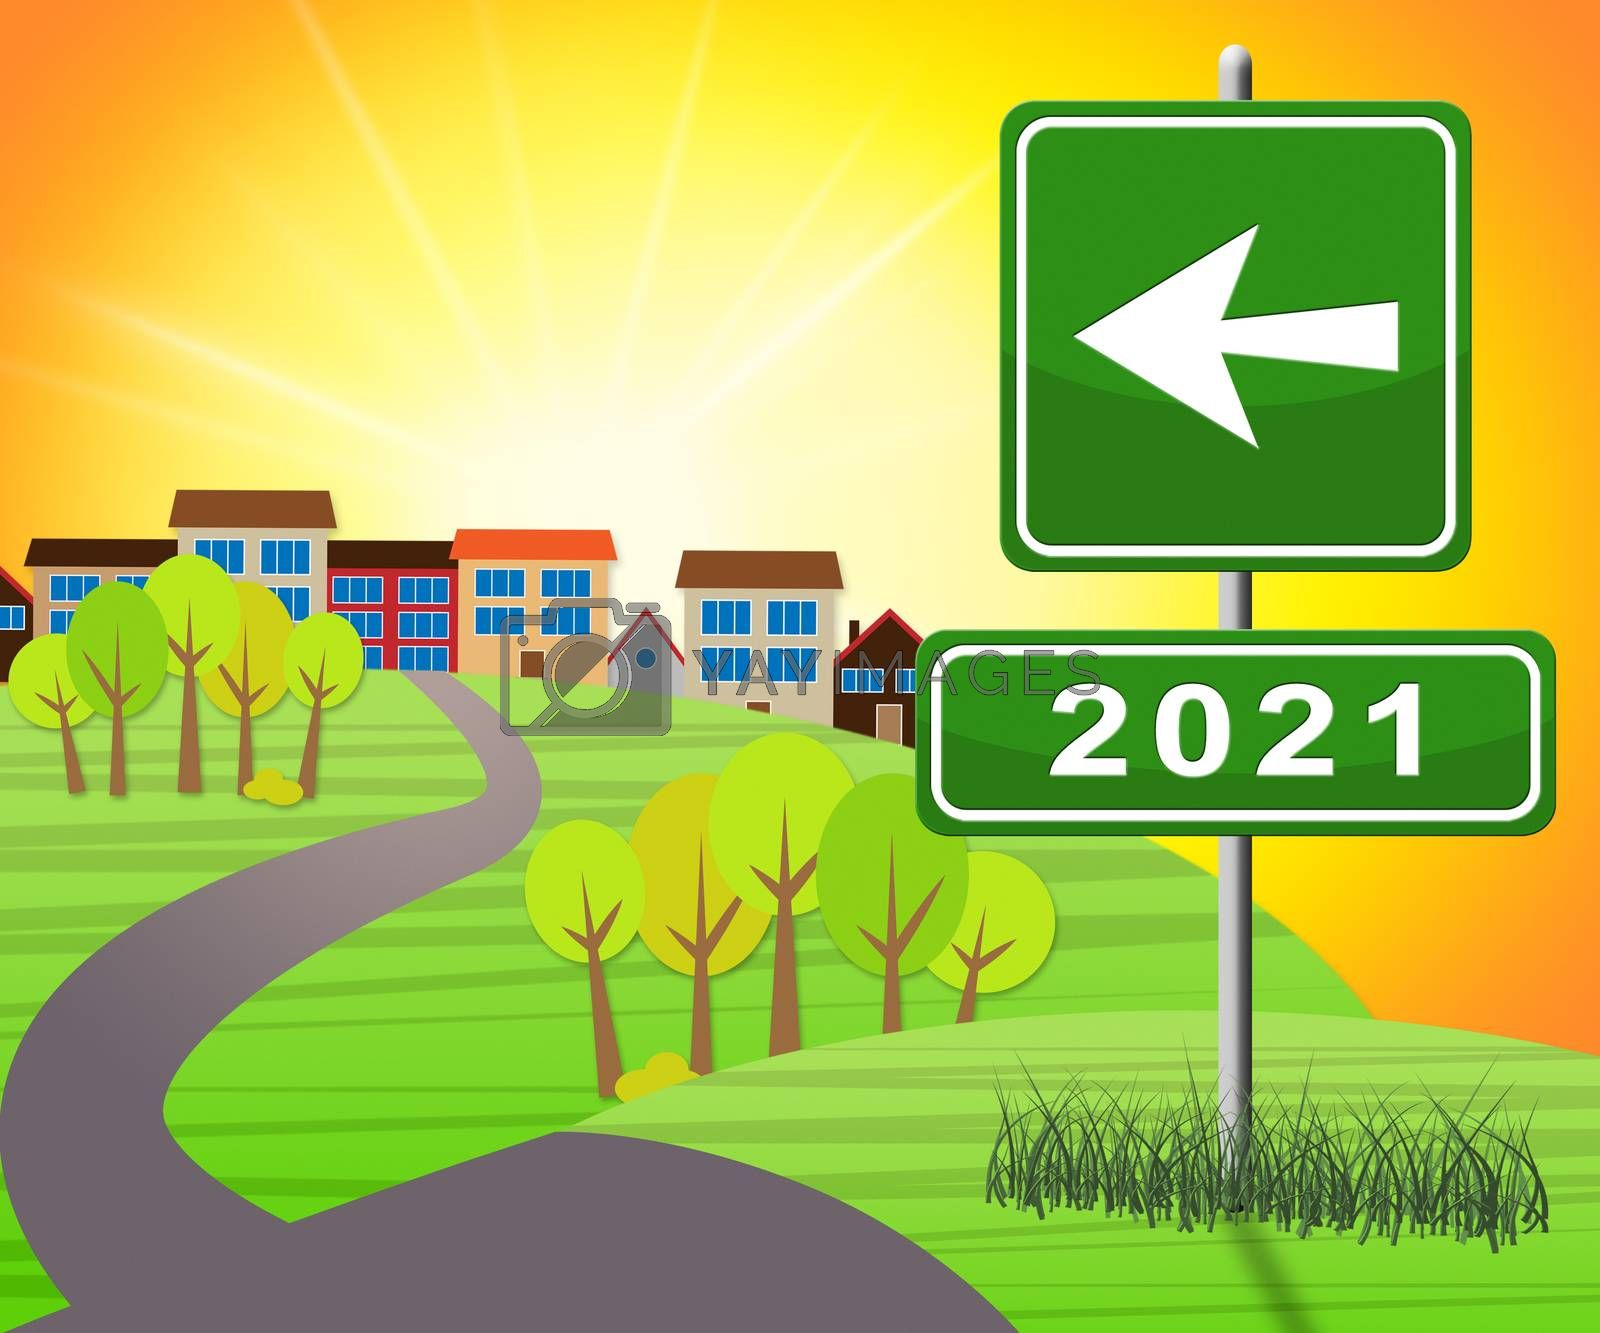 Two Thousand Twenty One Or 2021 Year 3d Illustration